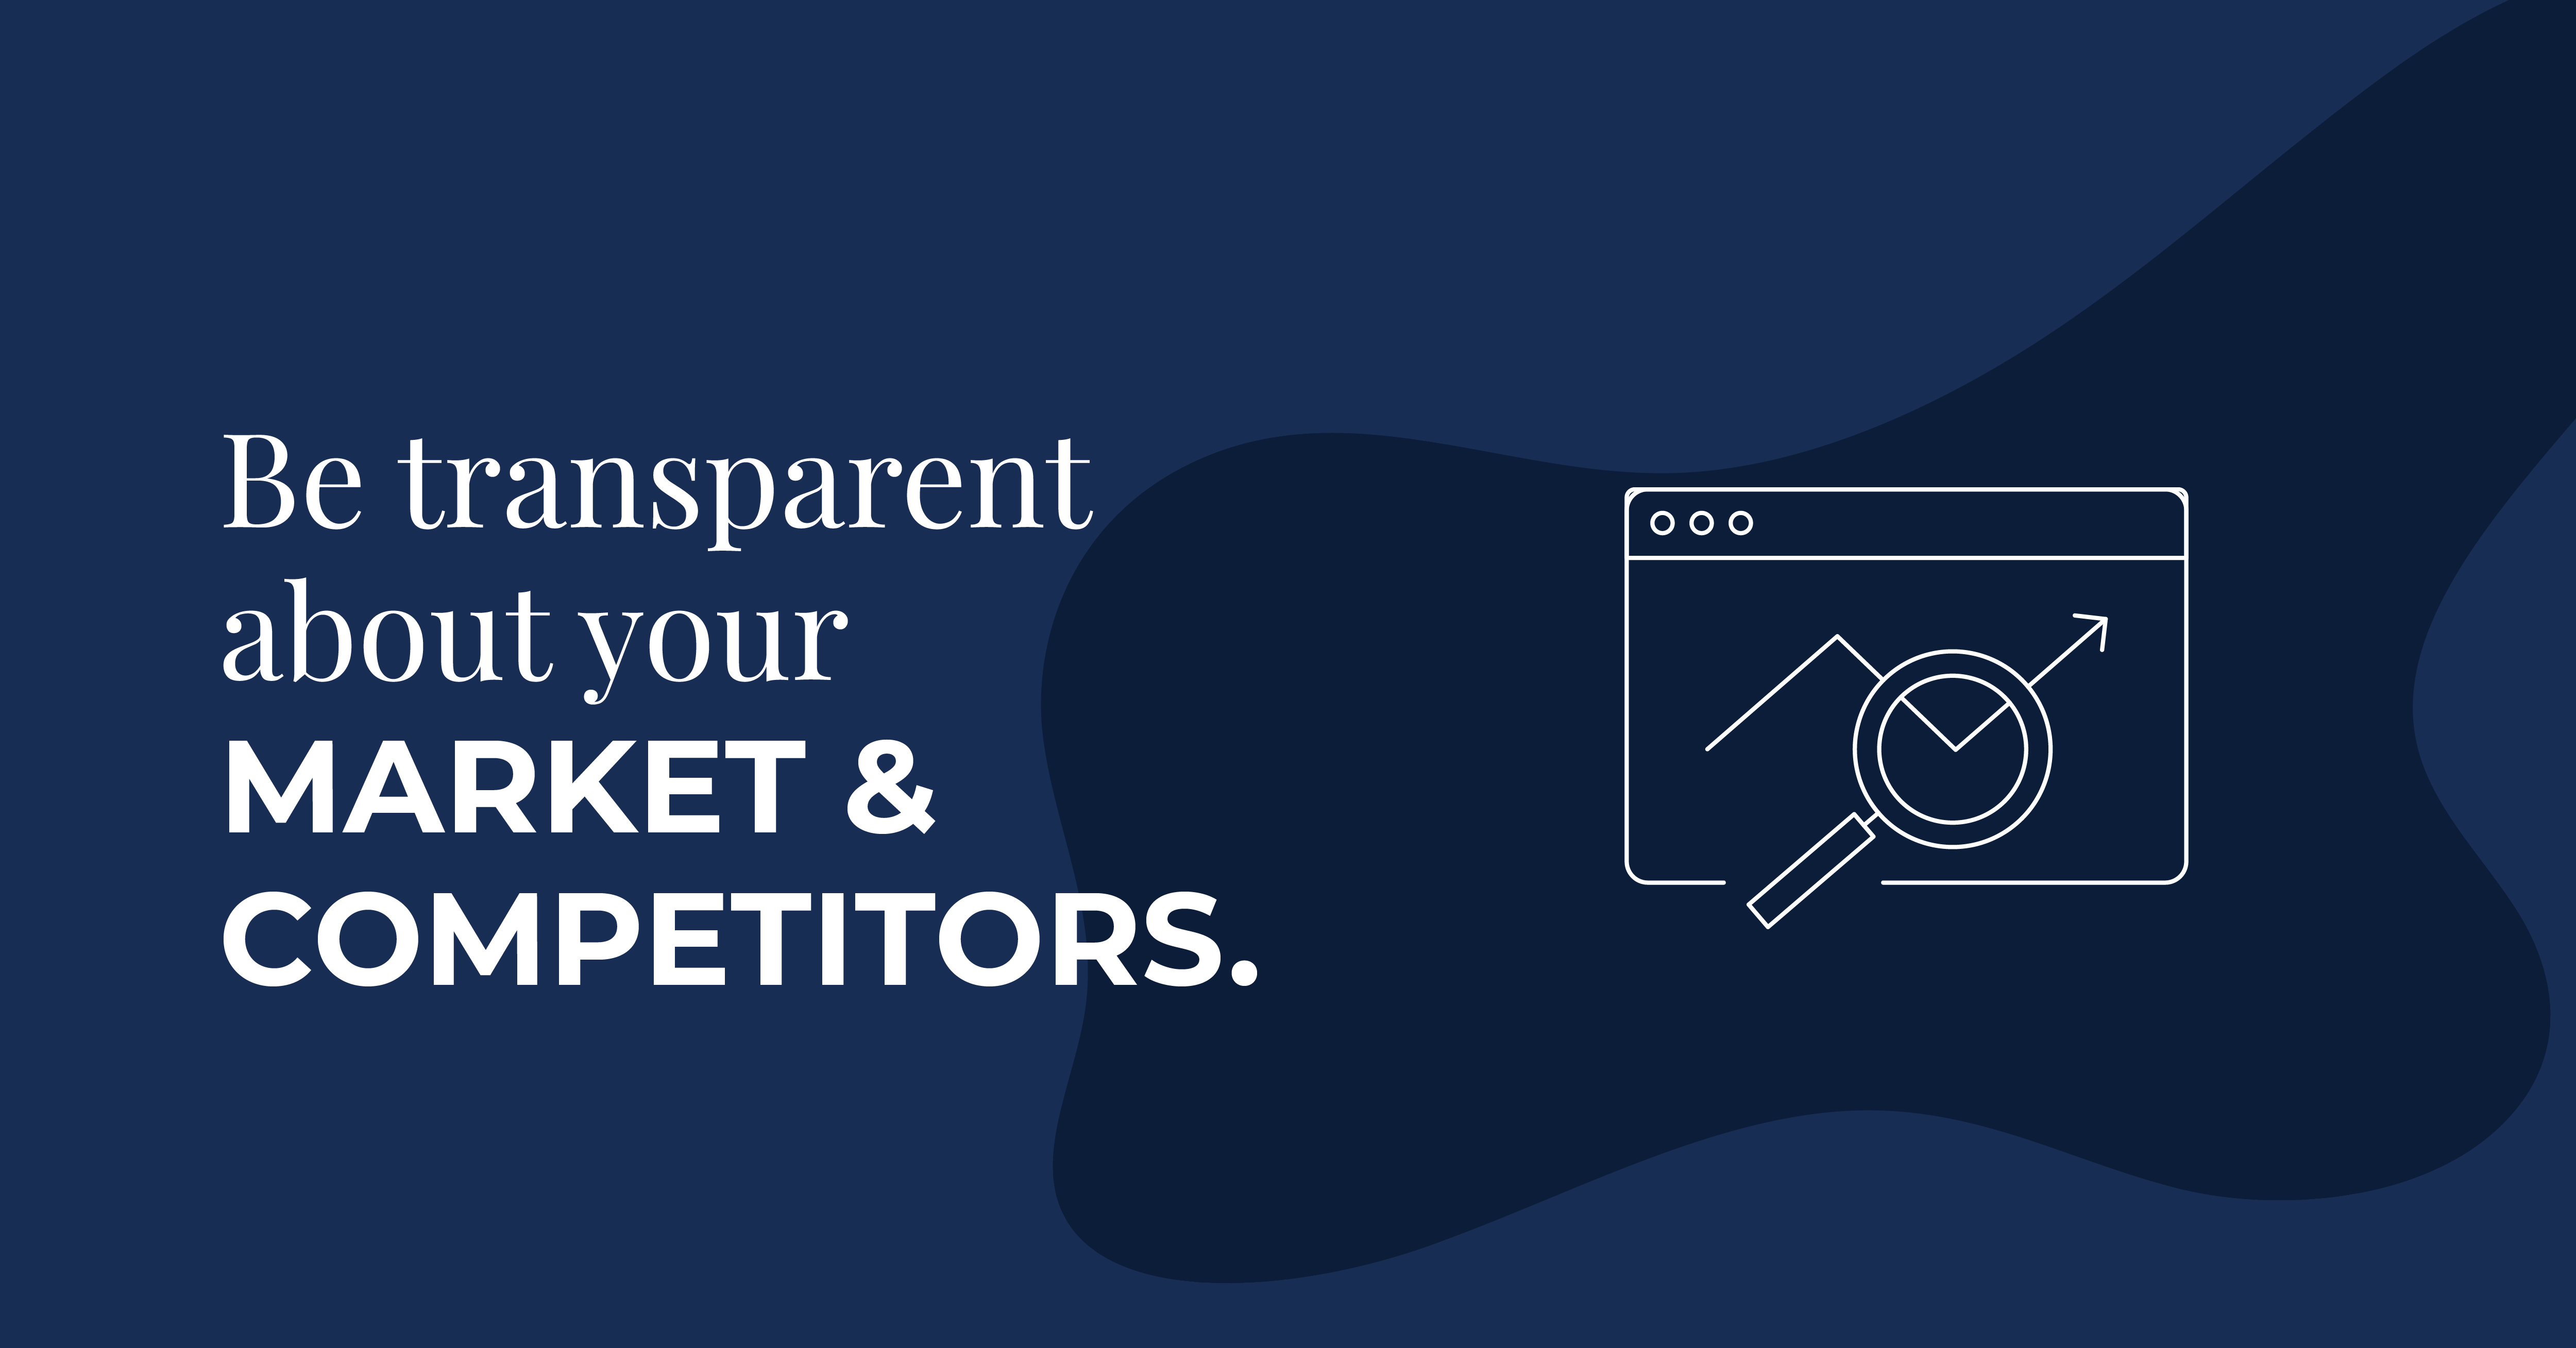 Be transparent about your market and competitors